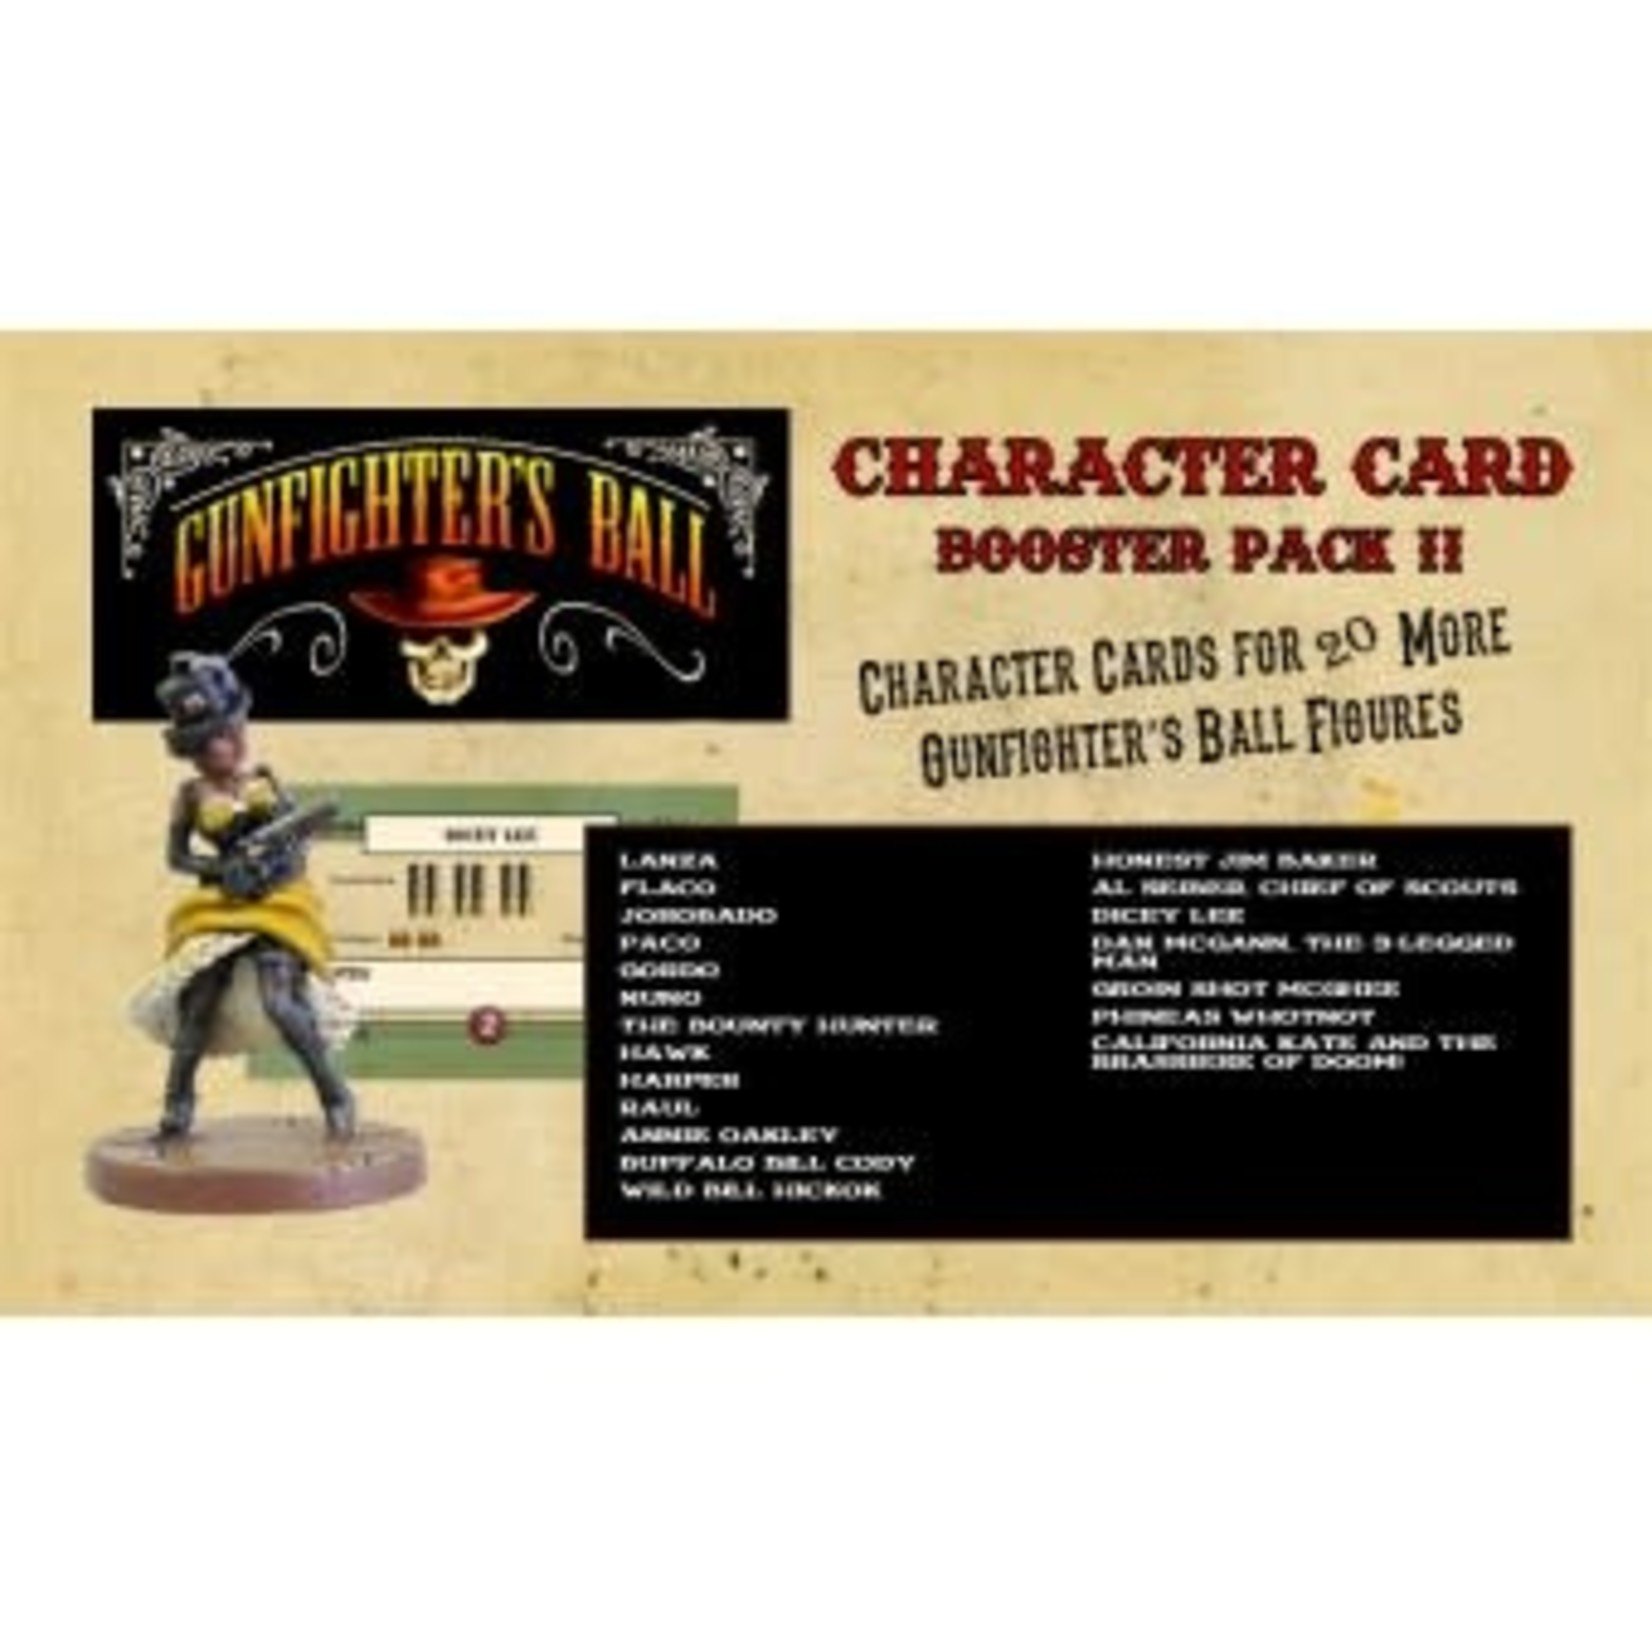 Character Card Booster Pack II